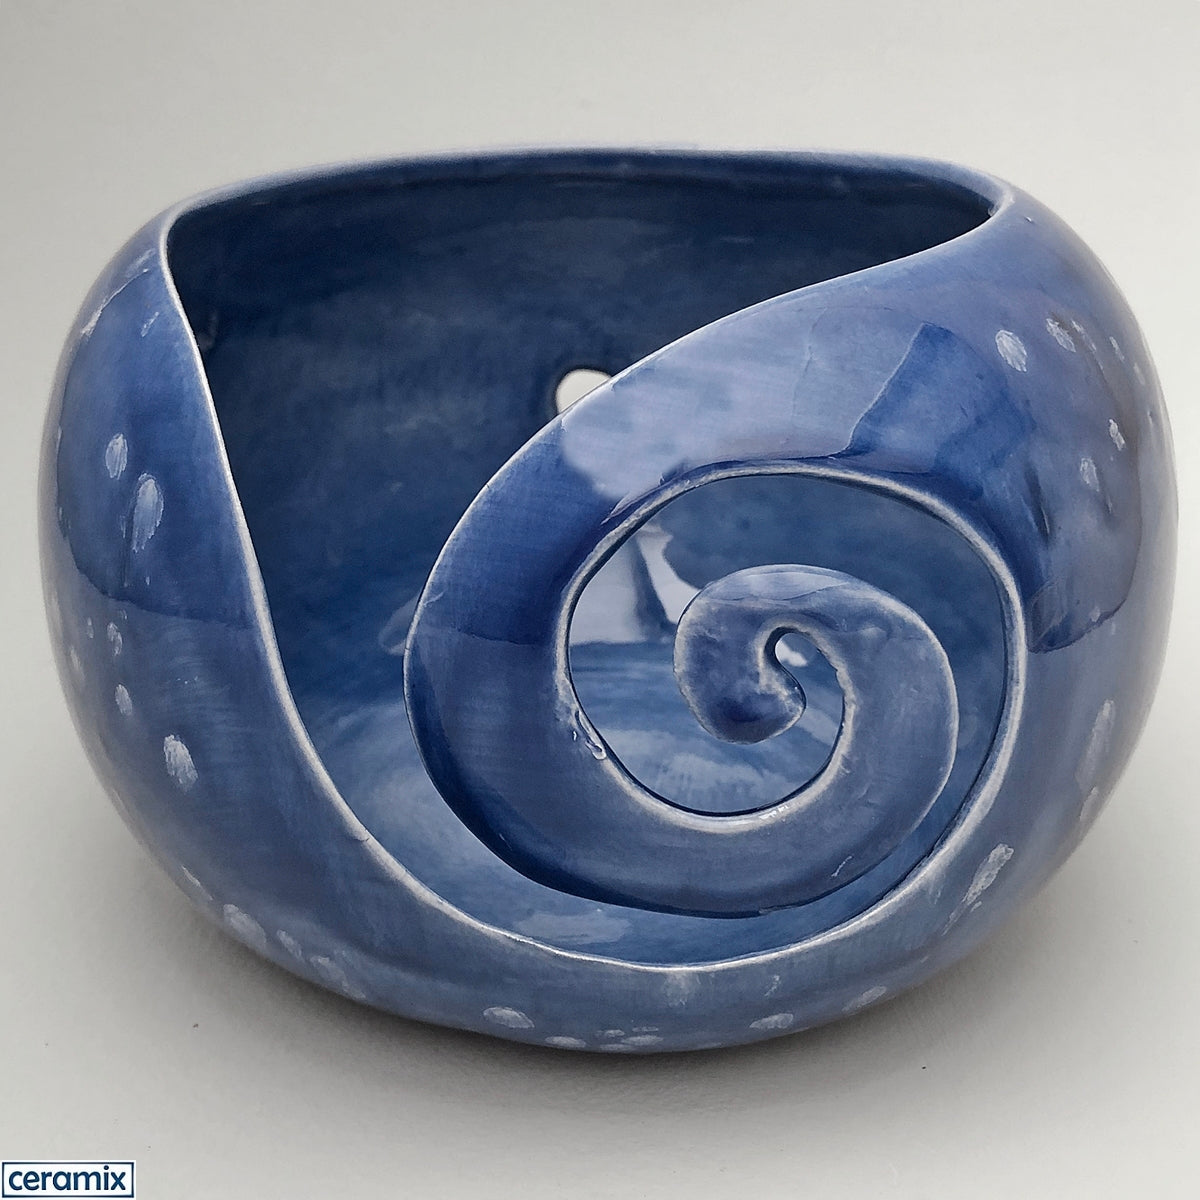 Celestial Blue large round ceramic yarn bowl handmade at the Ceramix pottery by Margaret Melville.